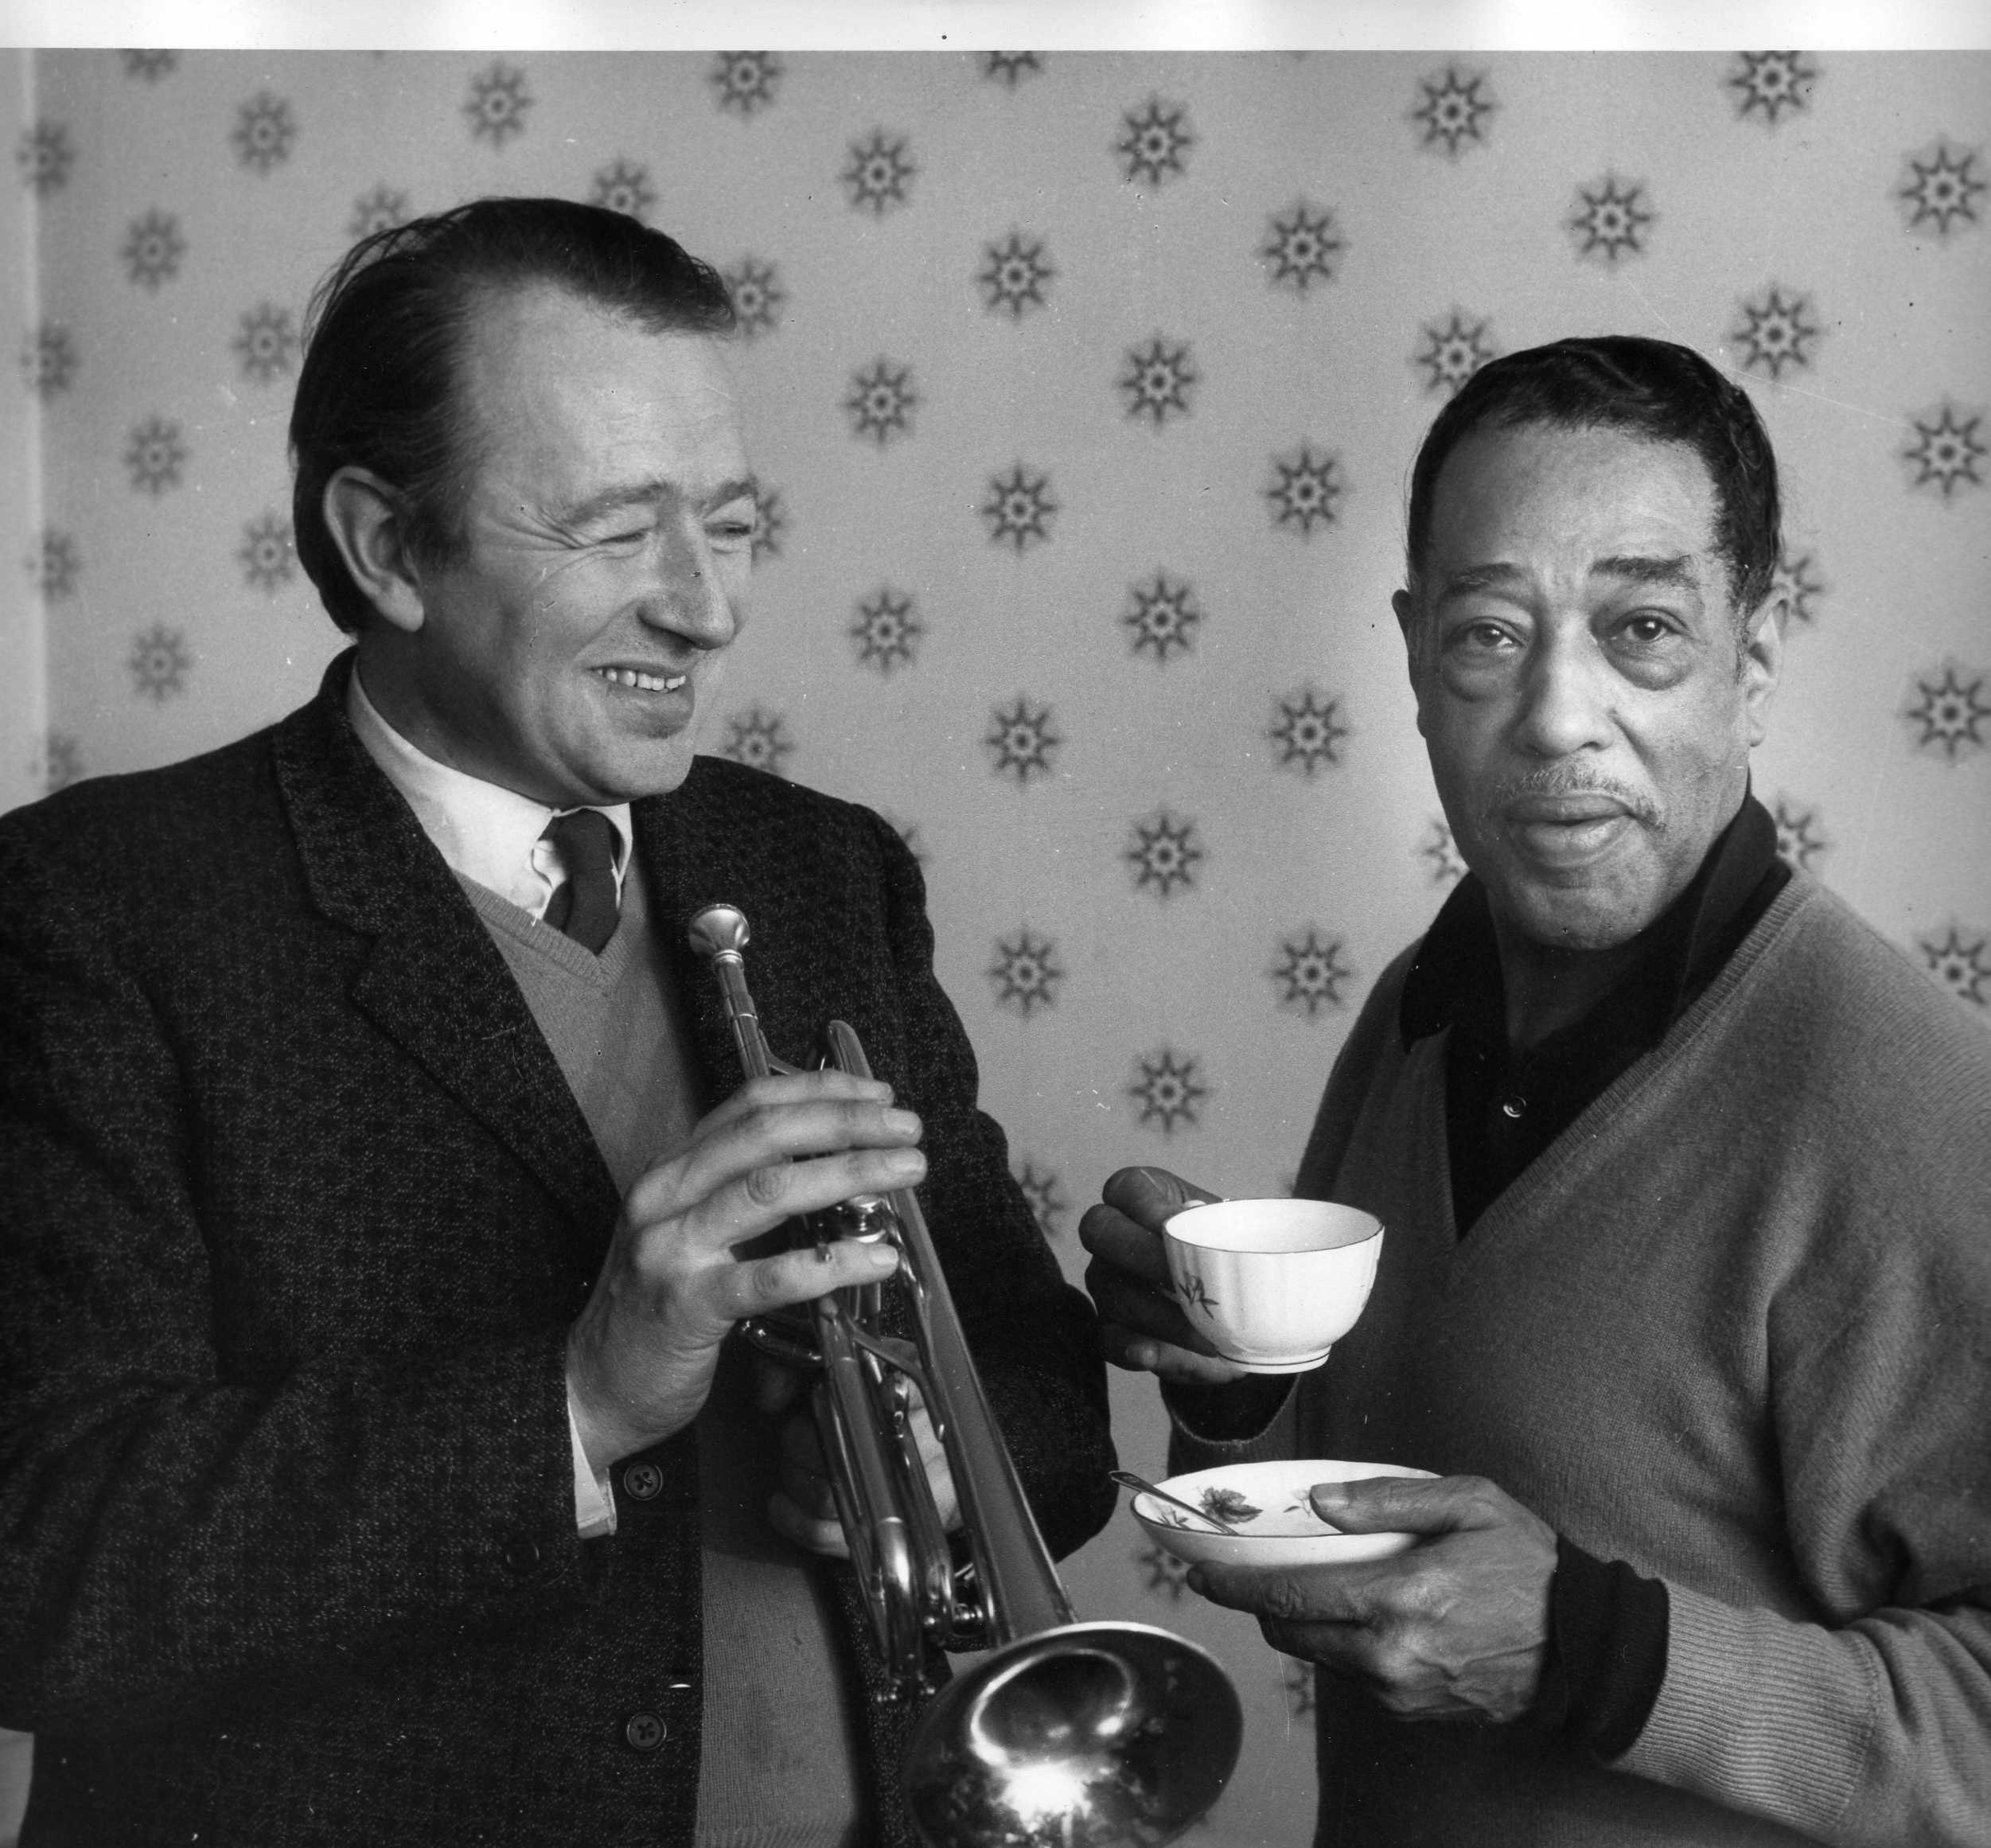 Humph and Duke Ellington